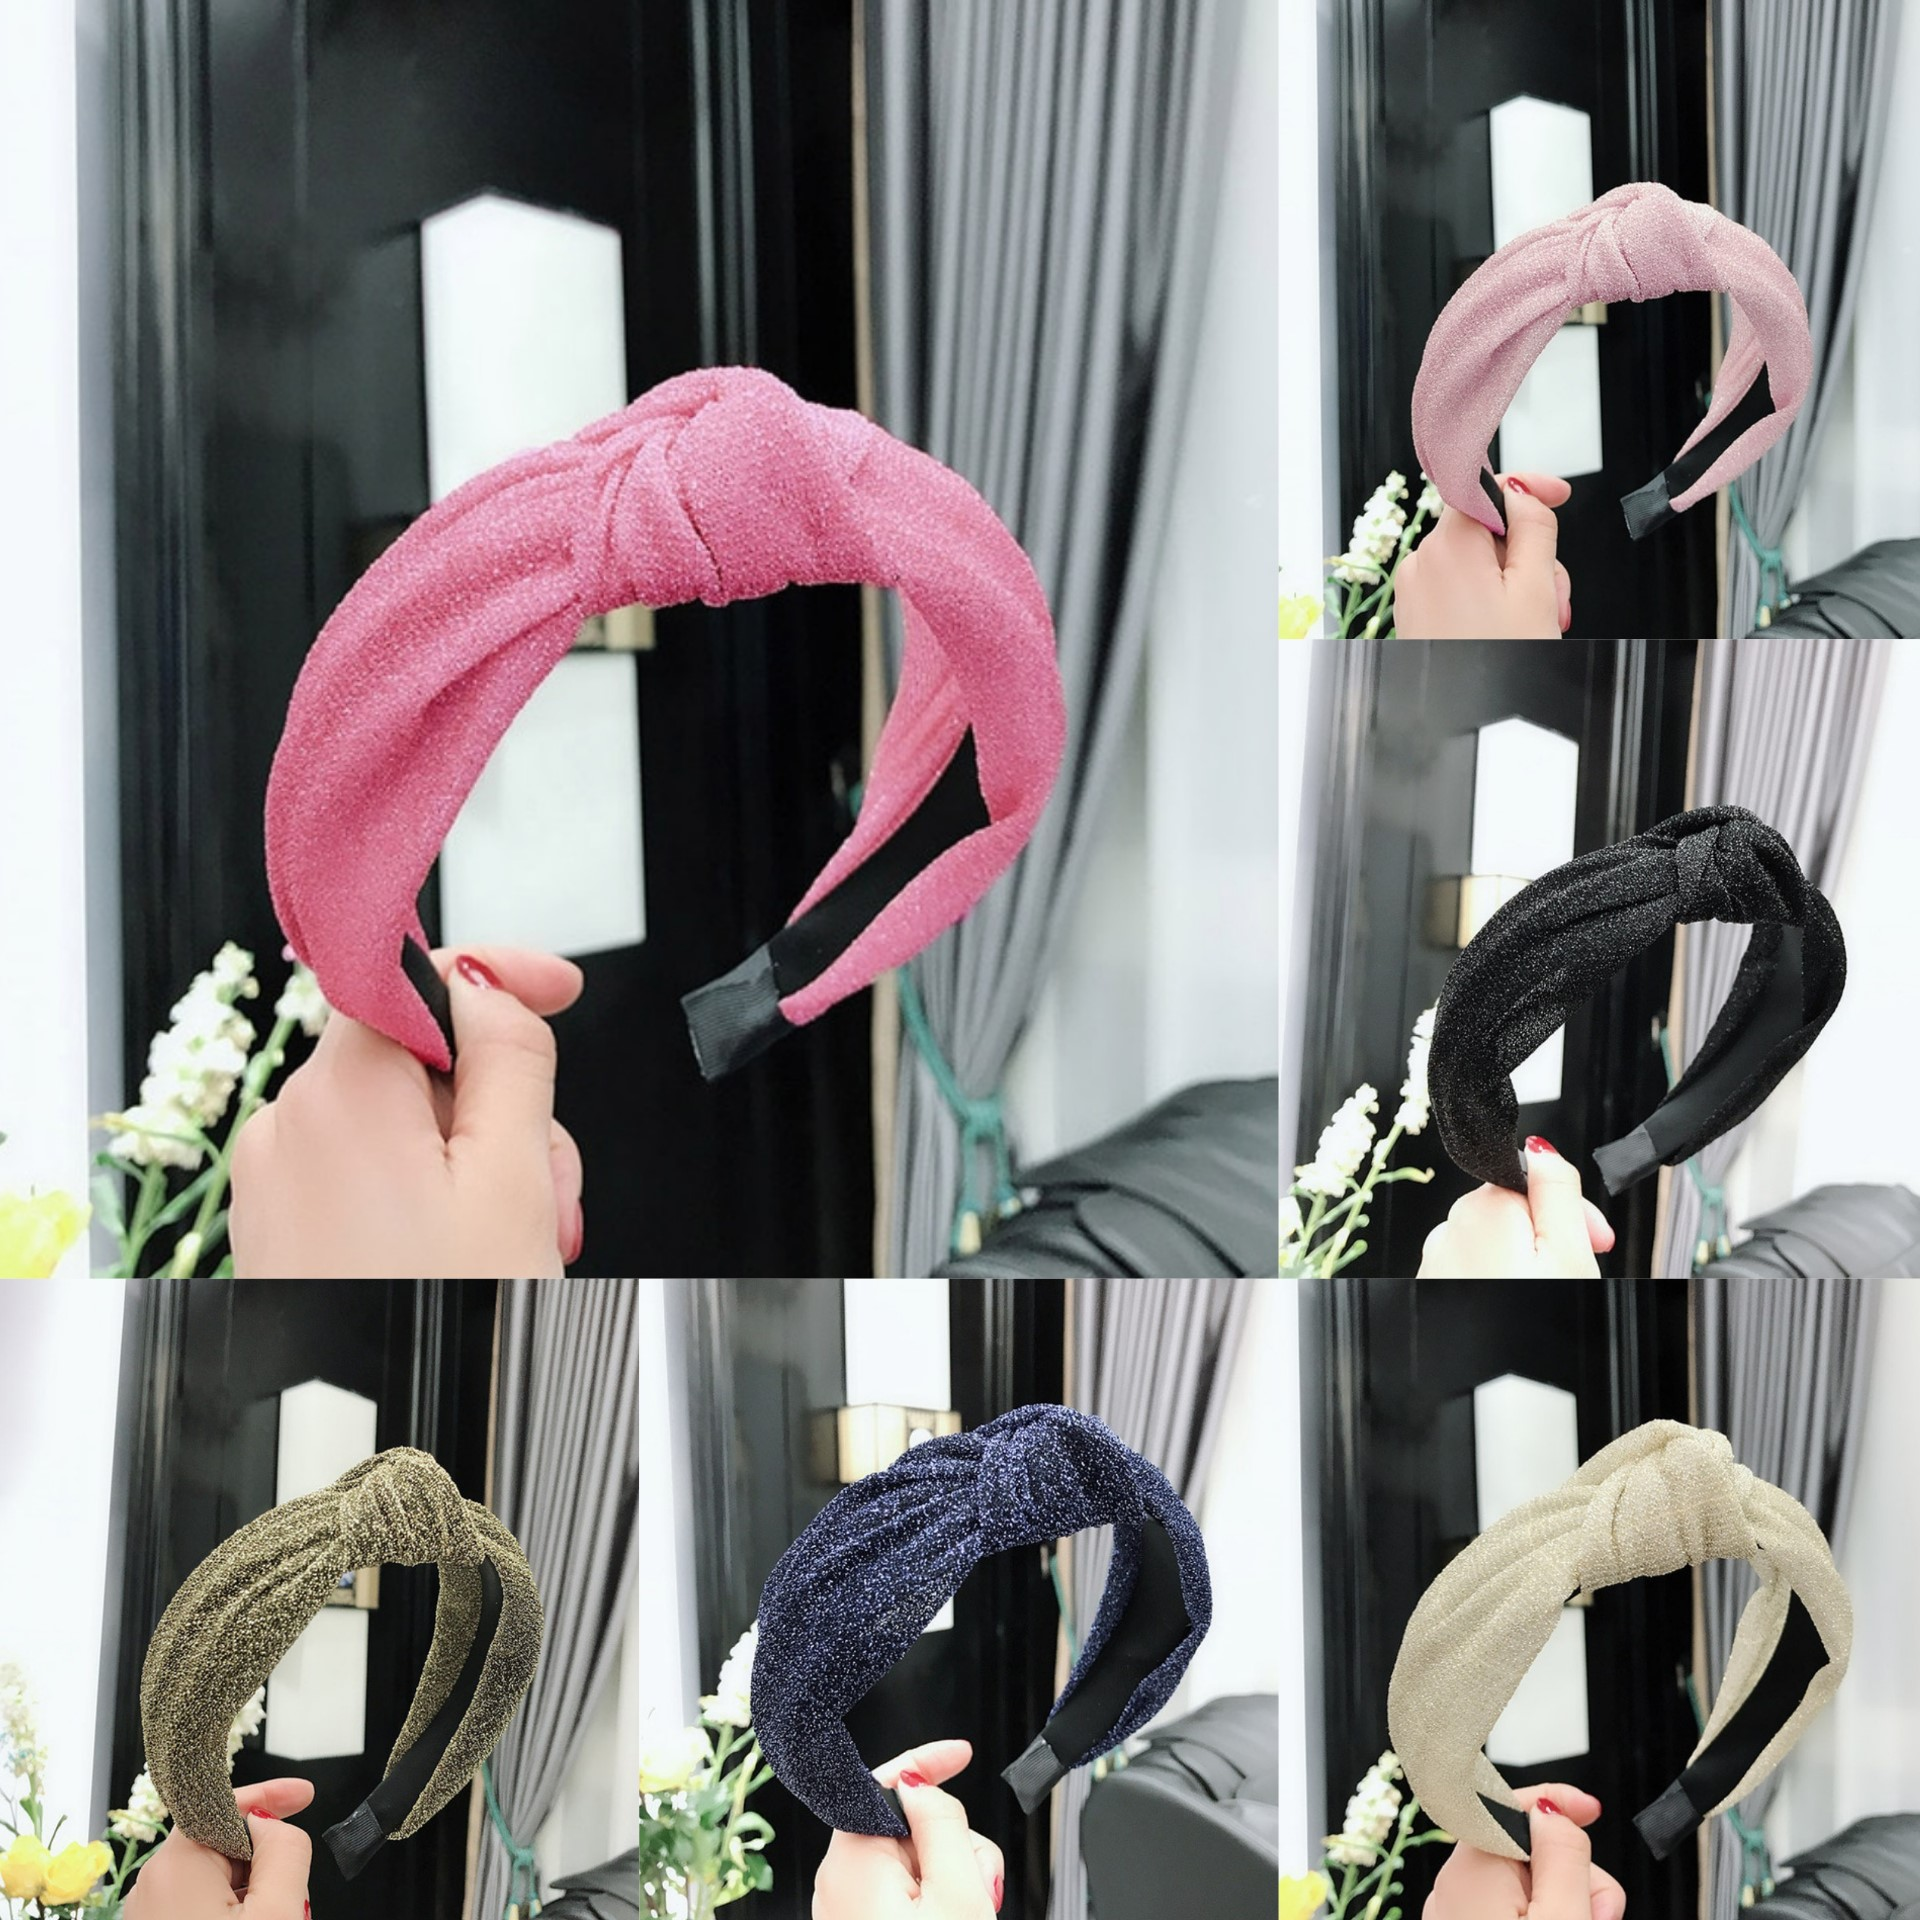 2021 New Women Bowknot Shining Hairband Cross Knotted Sparkle Head band Girls Fashion Fabric Headband Solid Head Hoop Lady Hair Accessories(1Pc)